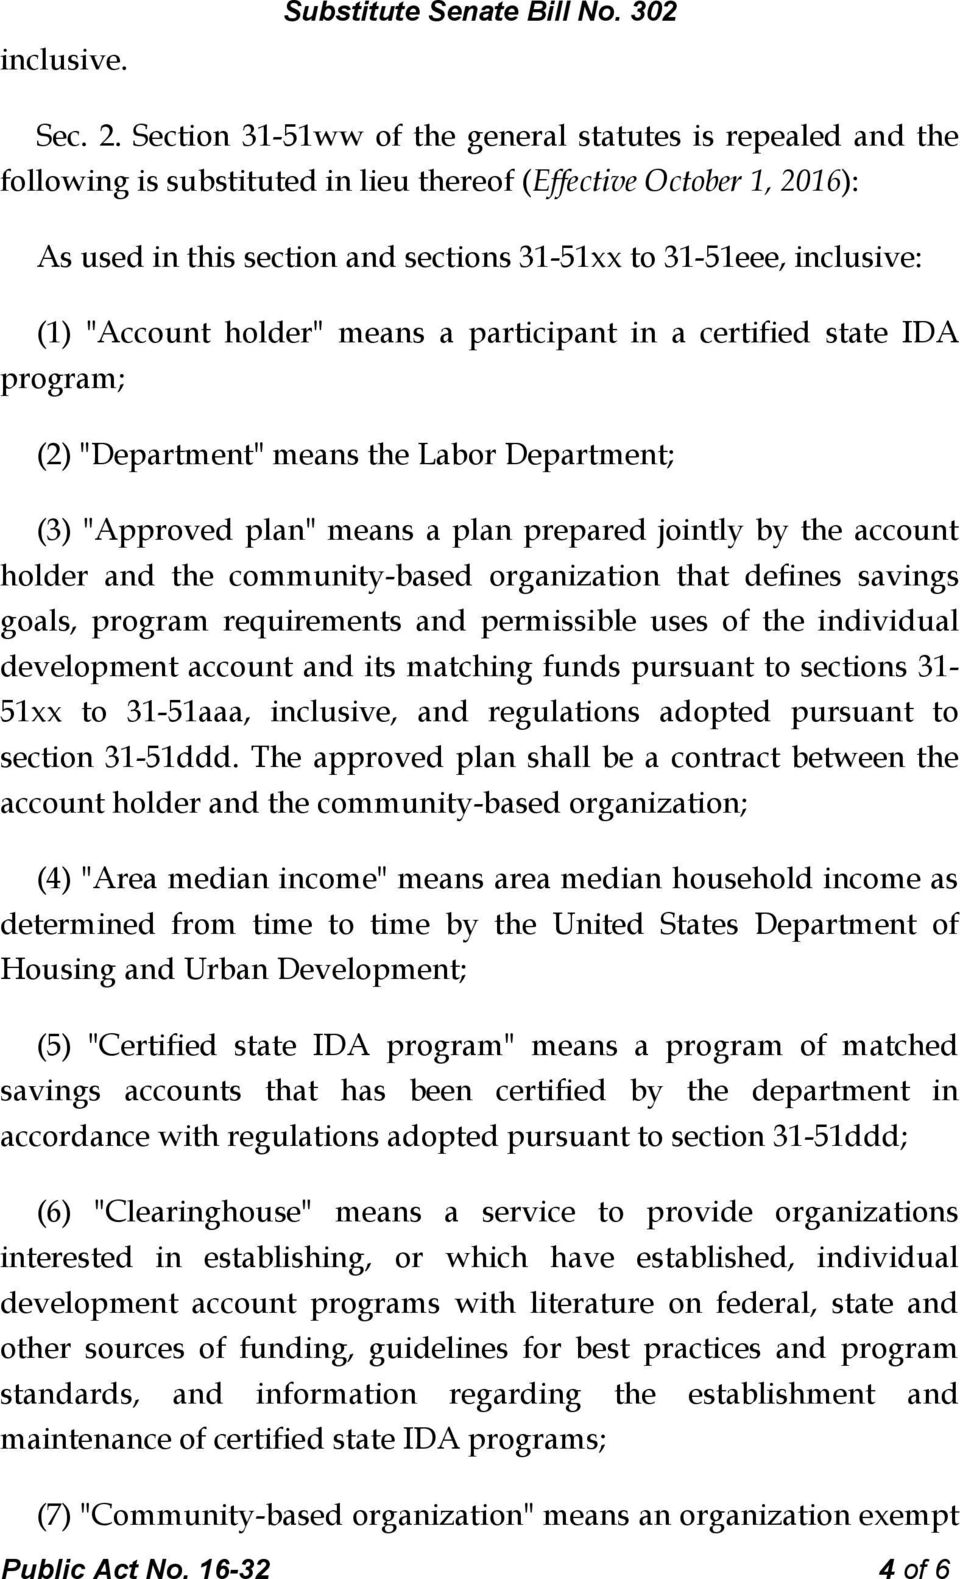 "(1) ""Account holder"" means a participant in a certified state IDA program; (2) ""Department"" means the Labor Department; (3) ""Approved plan"" means a plan prepared jointly by the account holder and the"